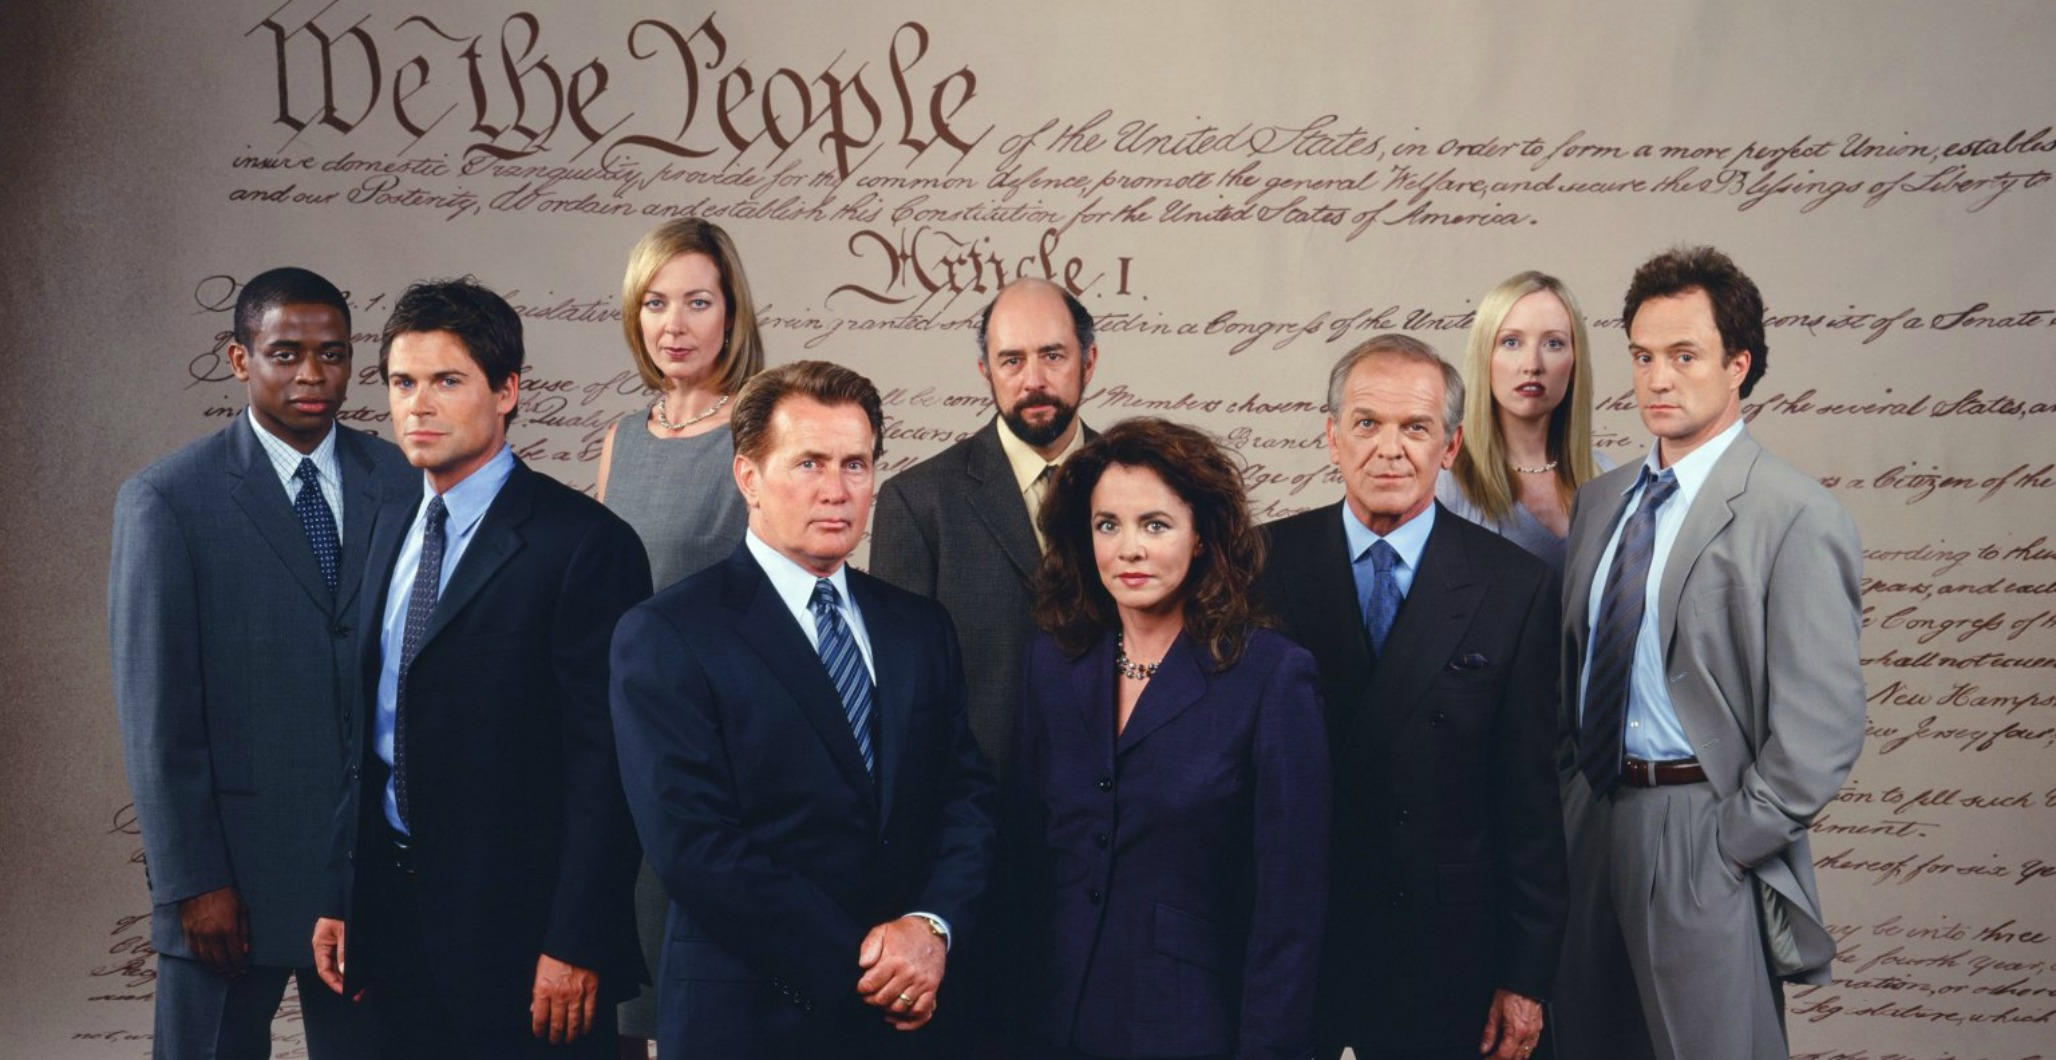 The West Wing and Constitution